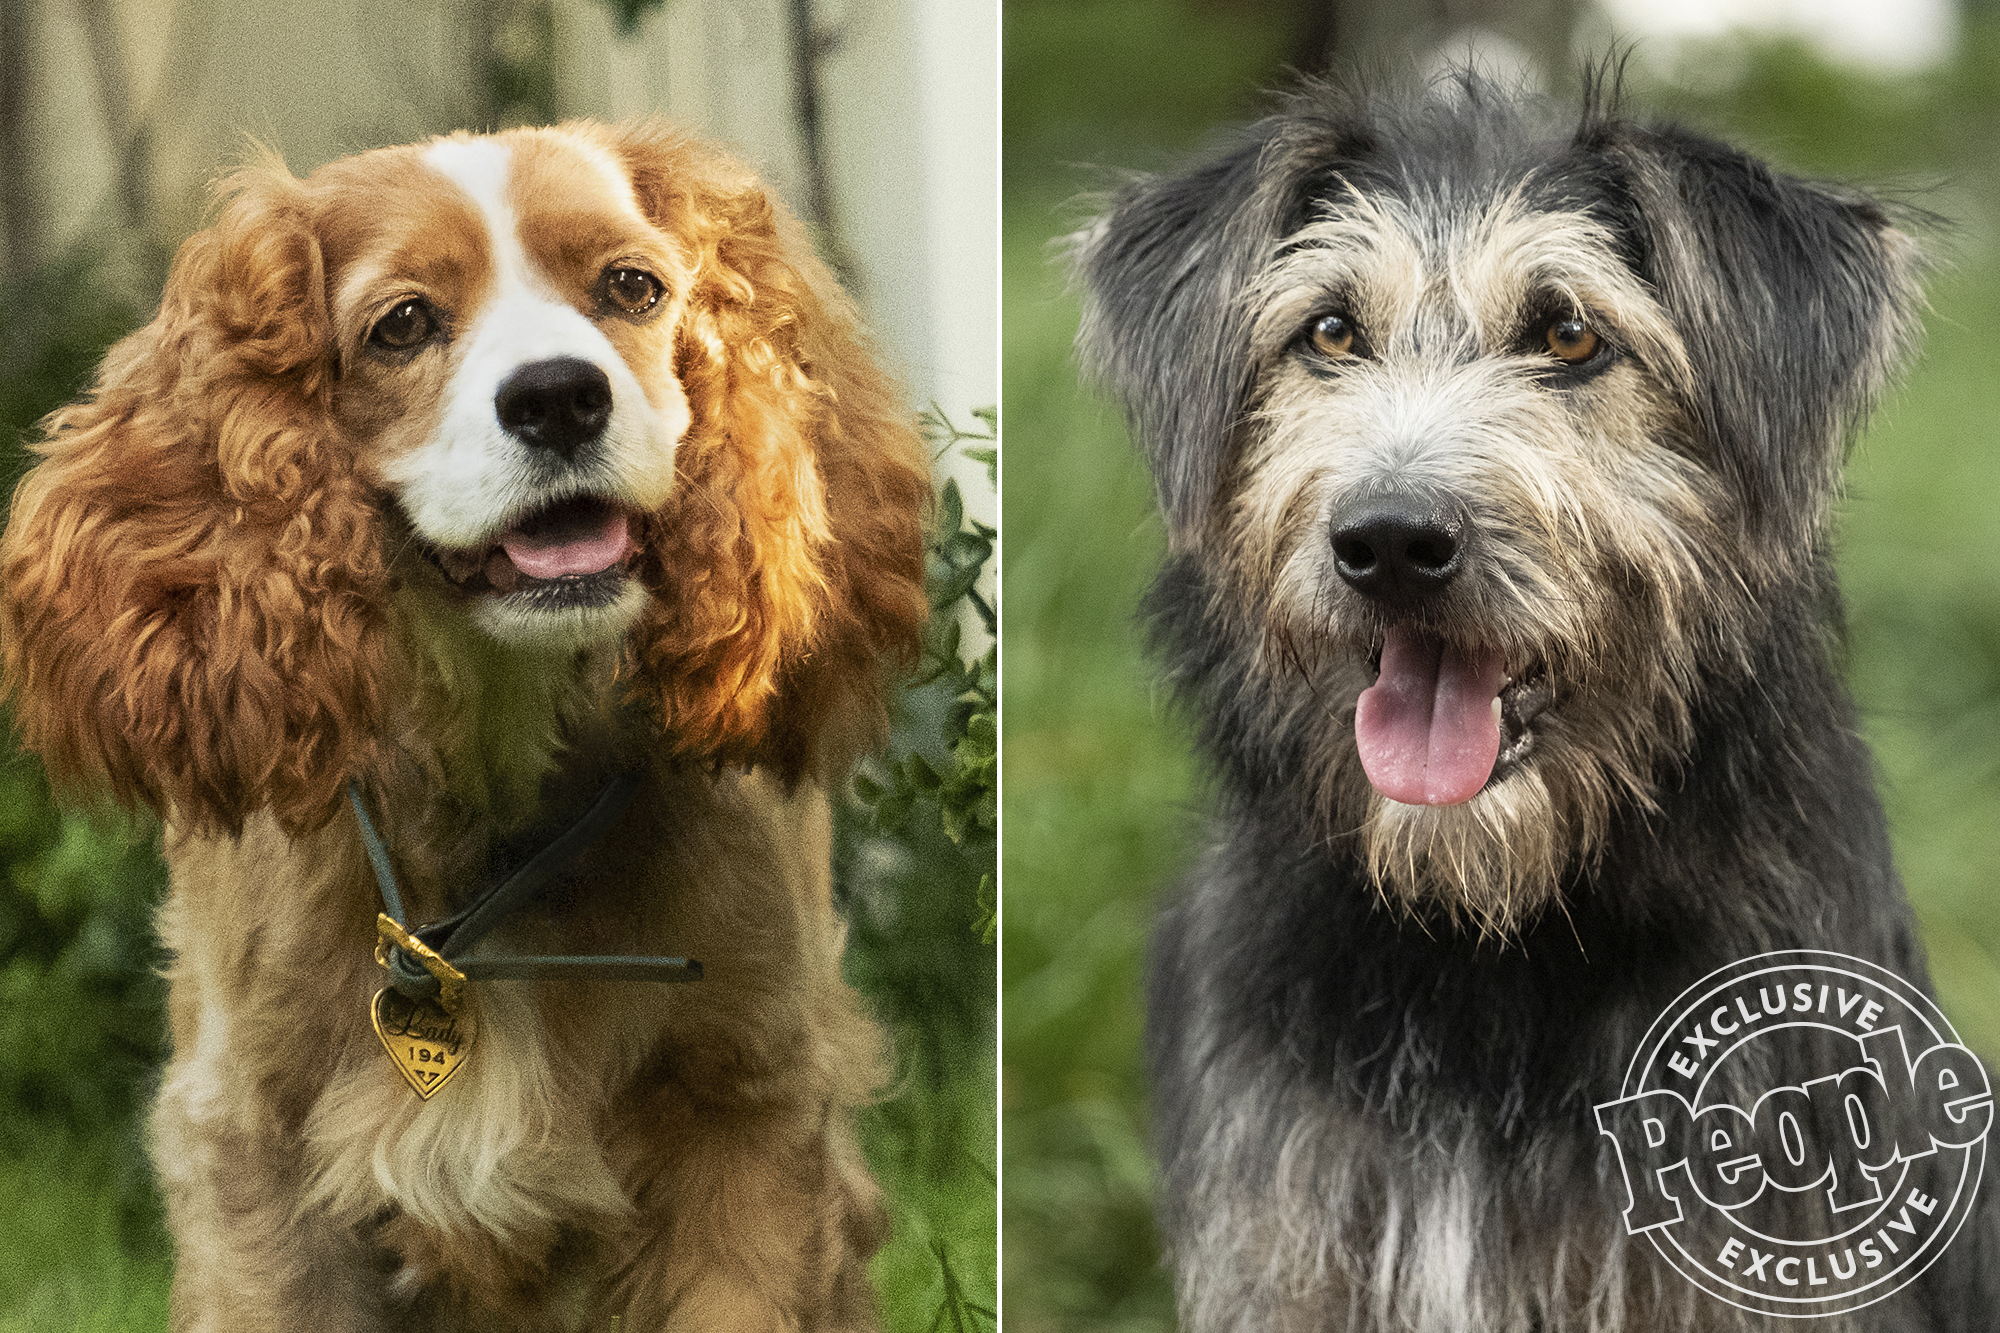 Disney Releases First Official Trailer for Live-Action Lady and the Tramp